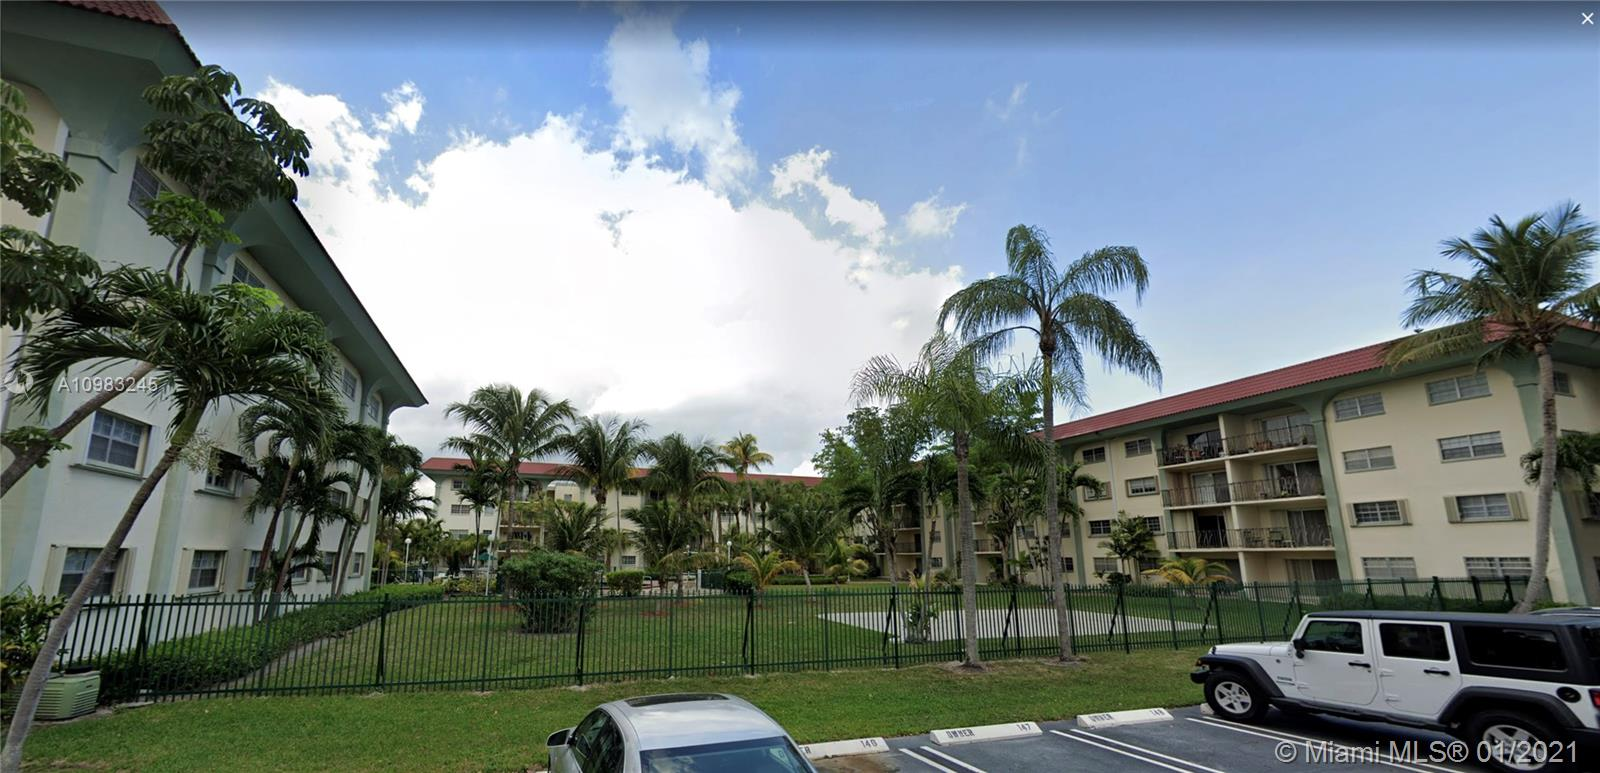 Spacious condo with two large bedrooms, lots of closets and huge living/dining room area. This 2/2 Dadeland condo has easy access to 826, 878, US 1, Kendall Drive.  Walk to Dadeland Metrorail North Station for convenient commute to downtown or Airport.  Secured access building with onsite laundry facilities, clubroom and swimming pool.  Two assigned parking spaces.